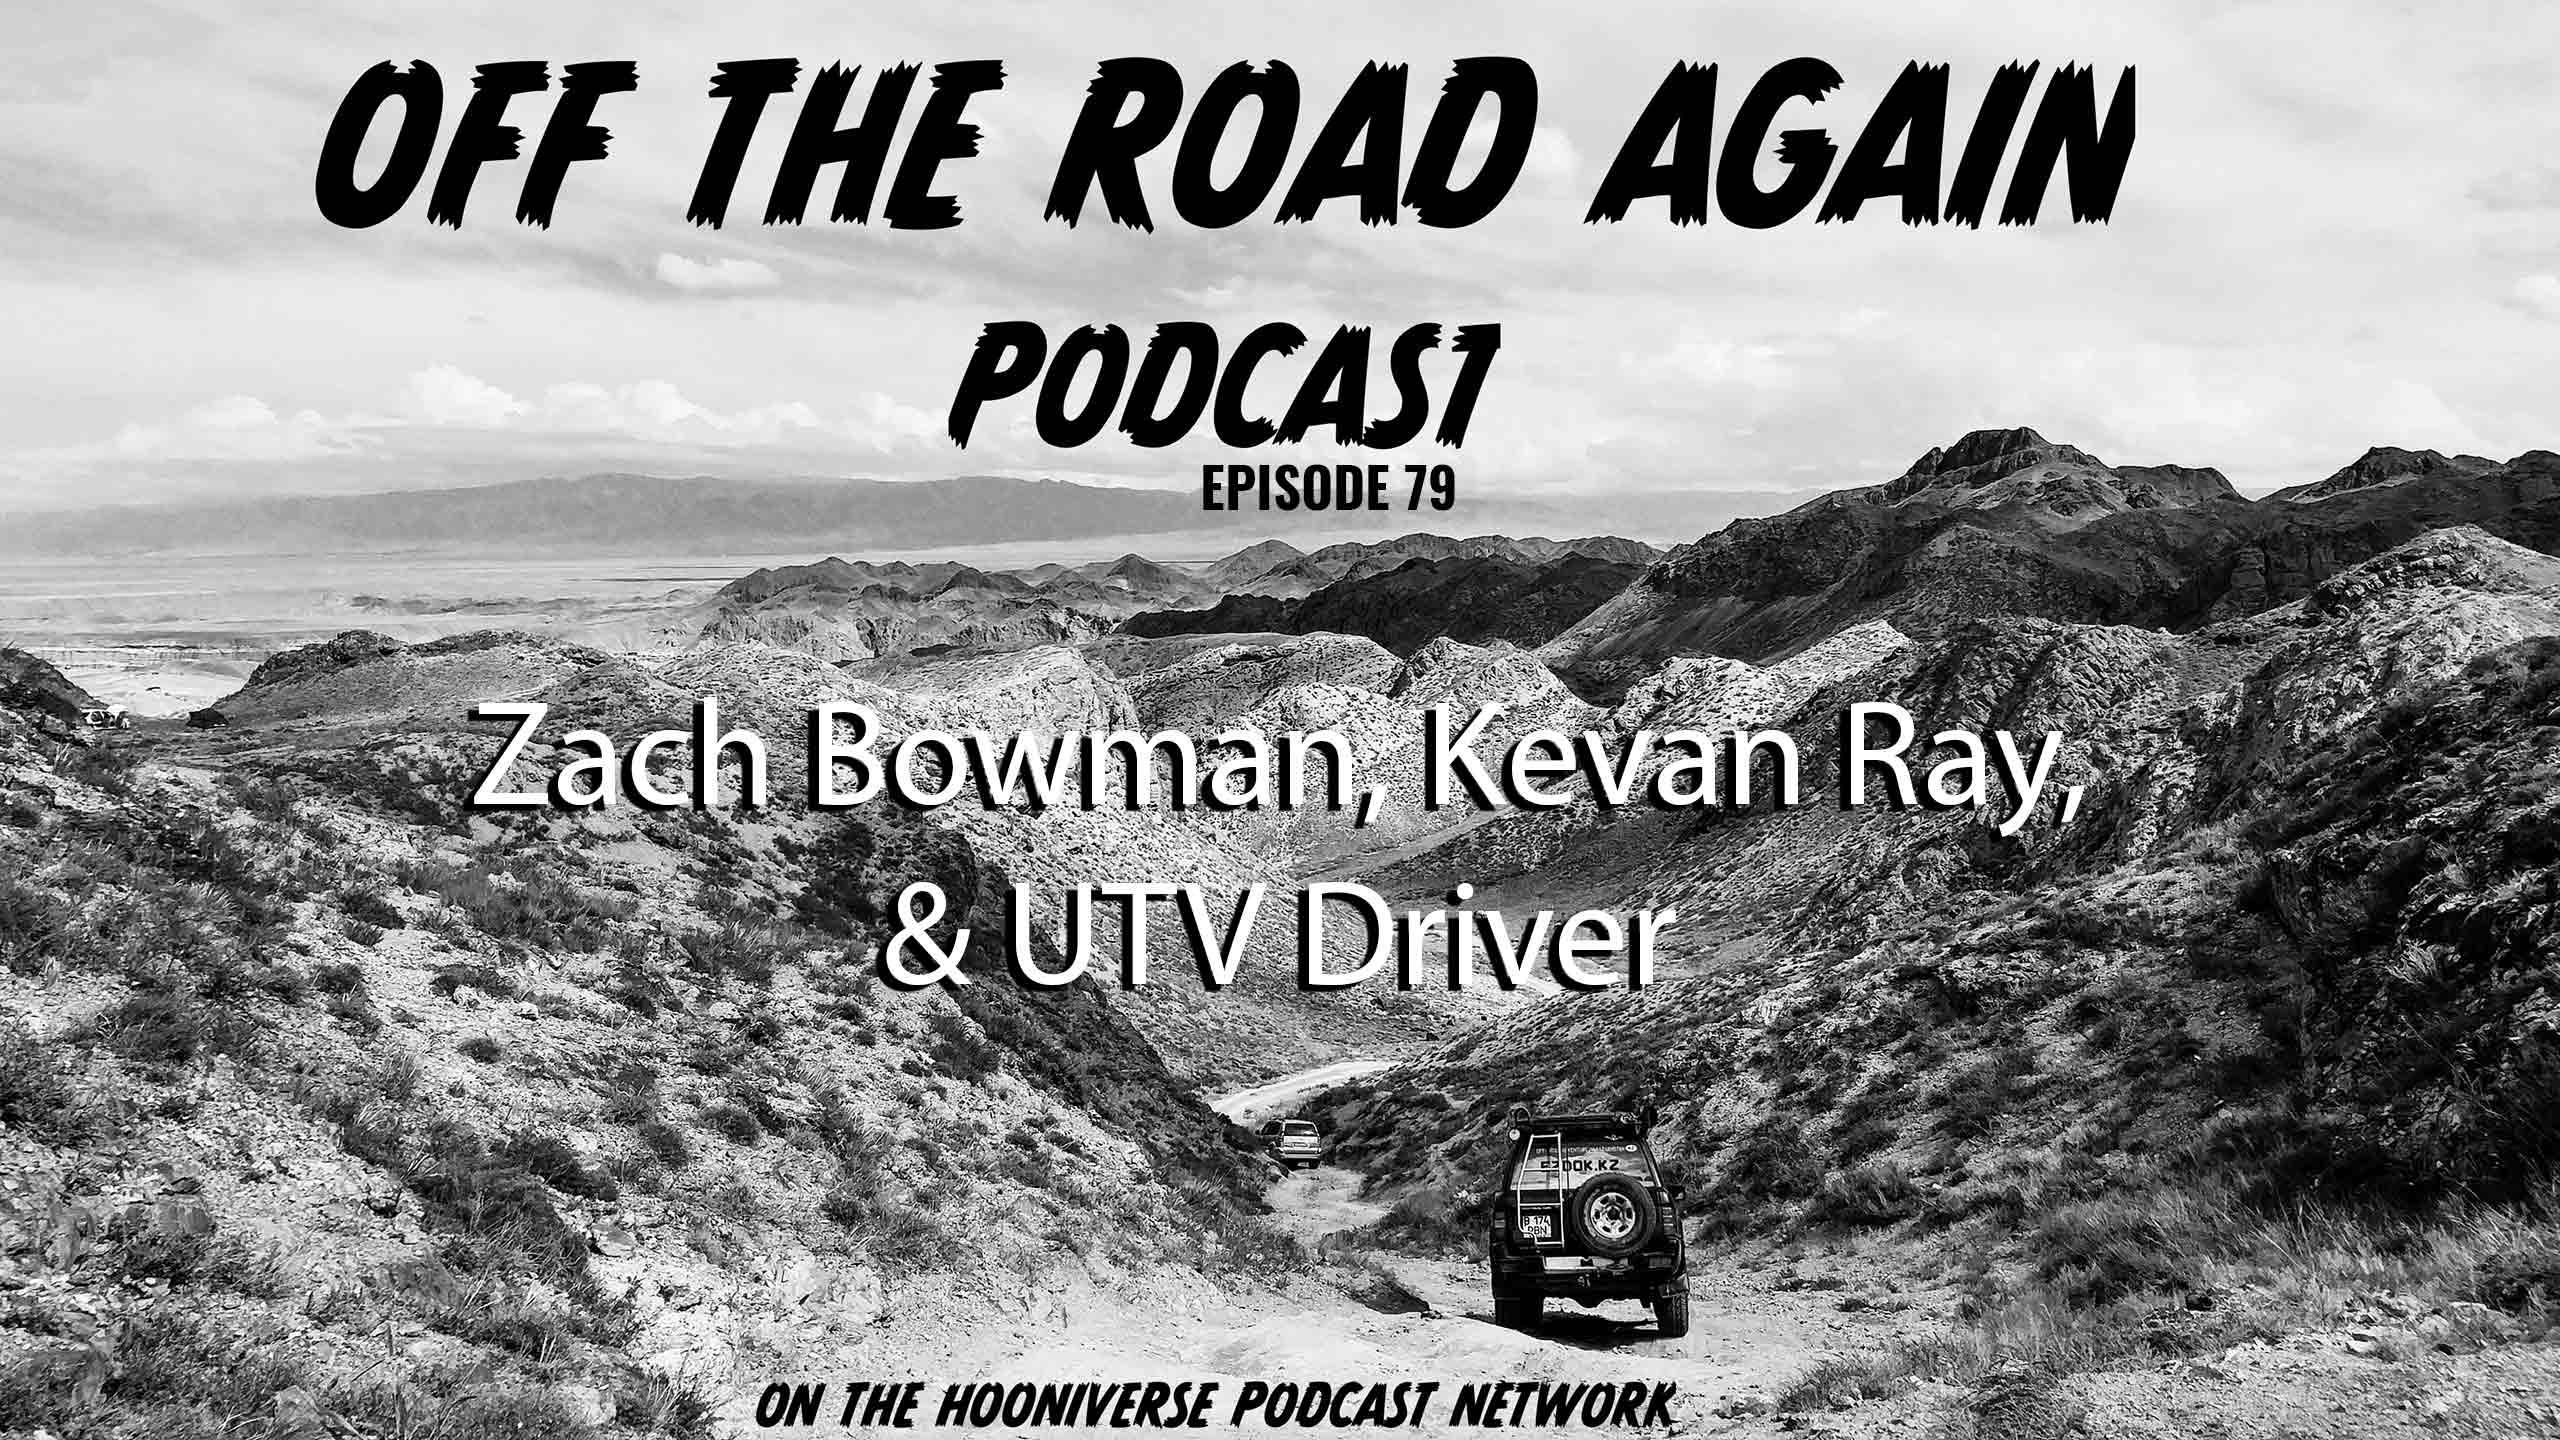 Zach-Bowman-Kevan-Ray-Off-The-Road-Again-Podcast-Episode-79